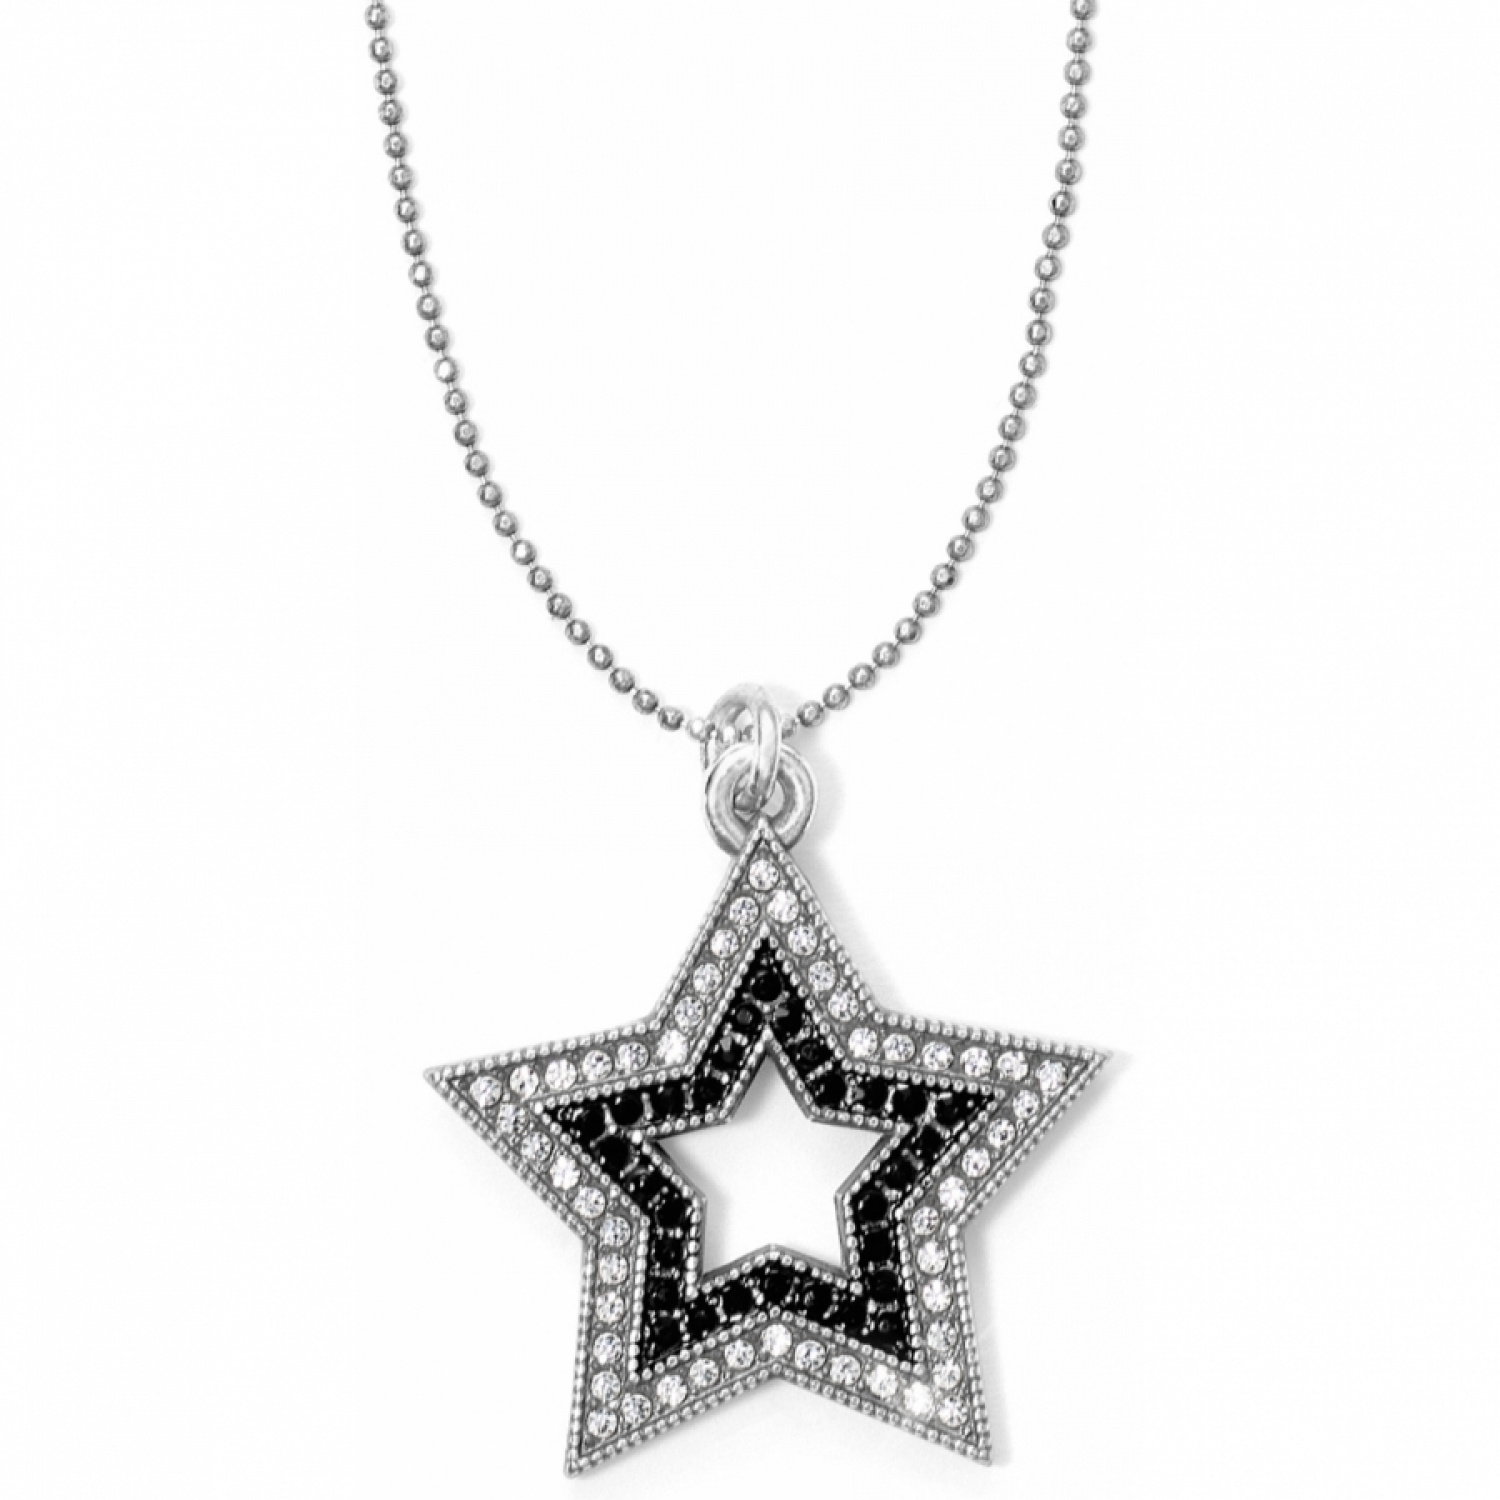 Twinkle Nights Twinkle Nights Star Necklace Necklaces